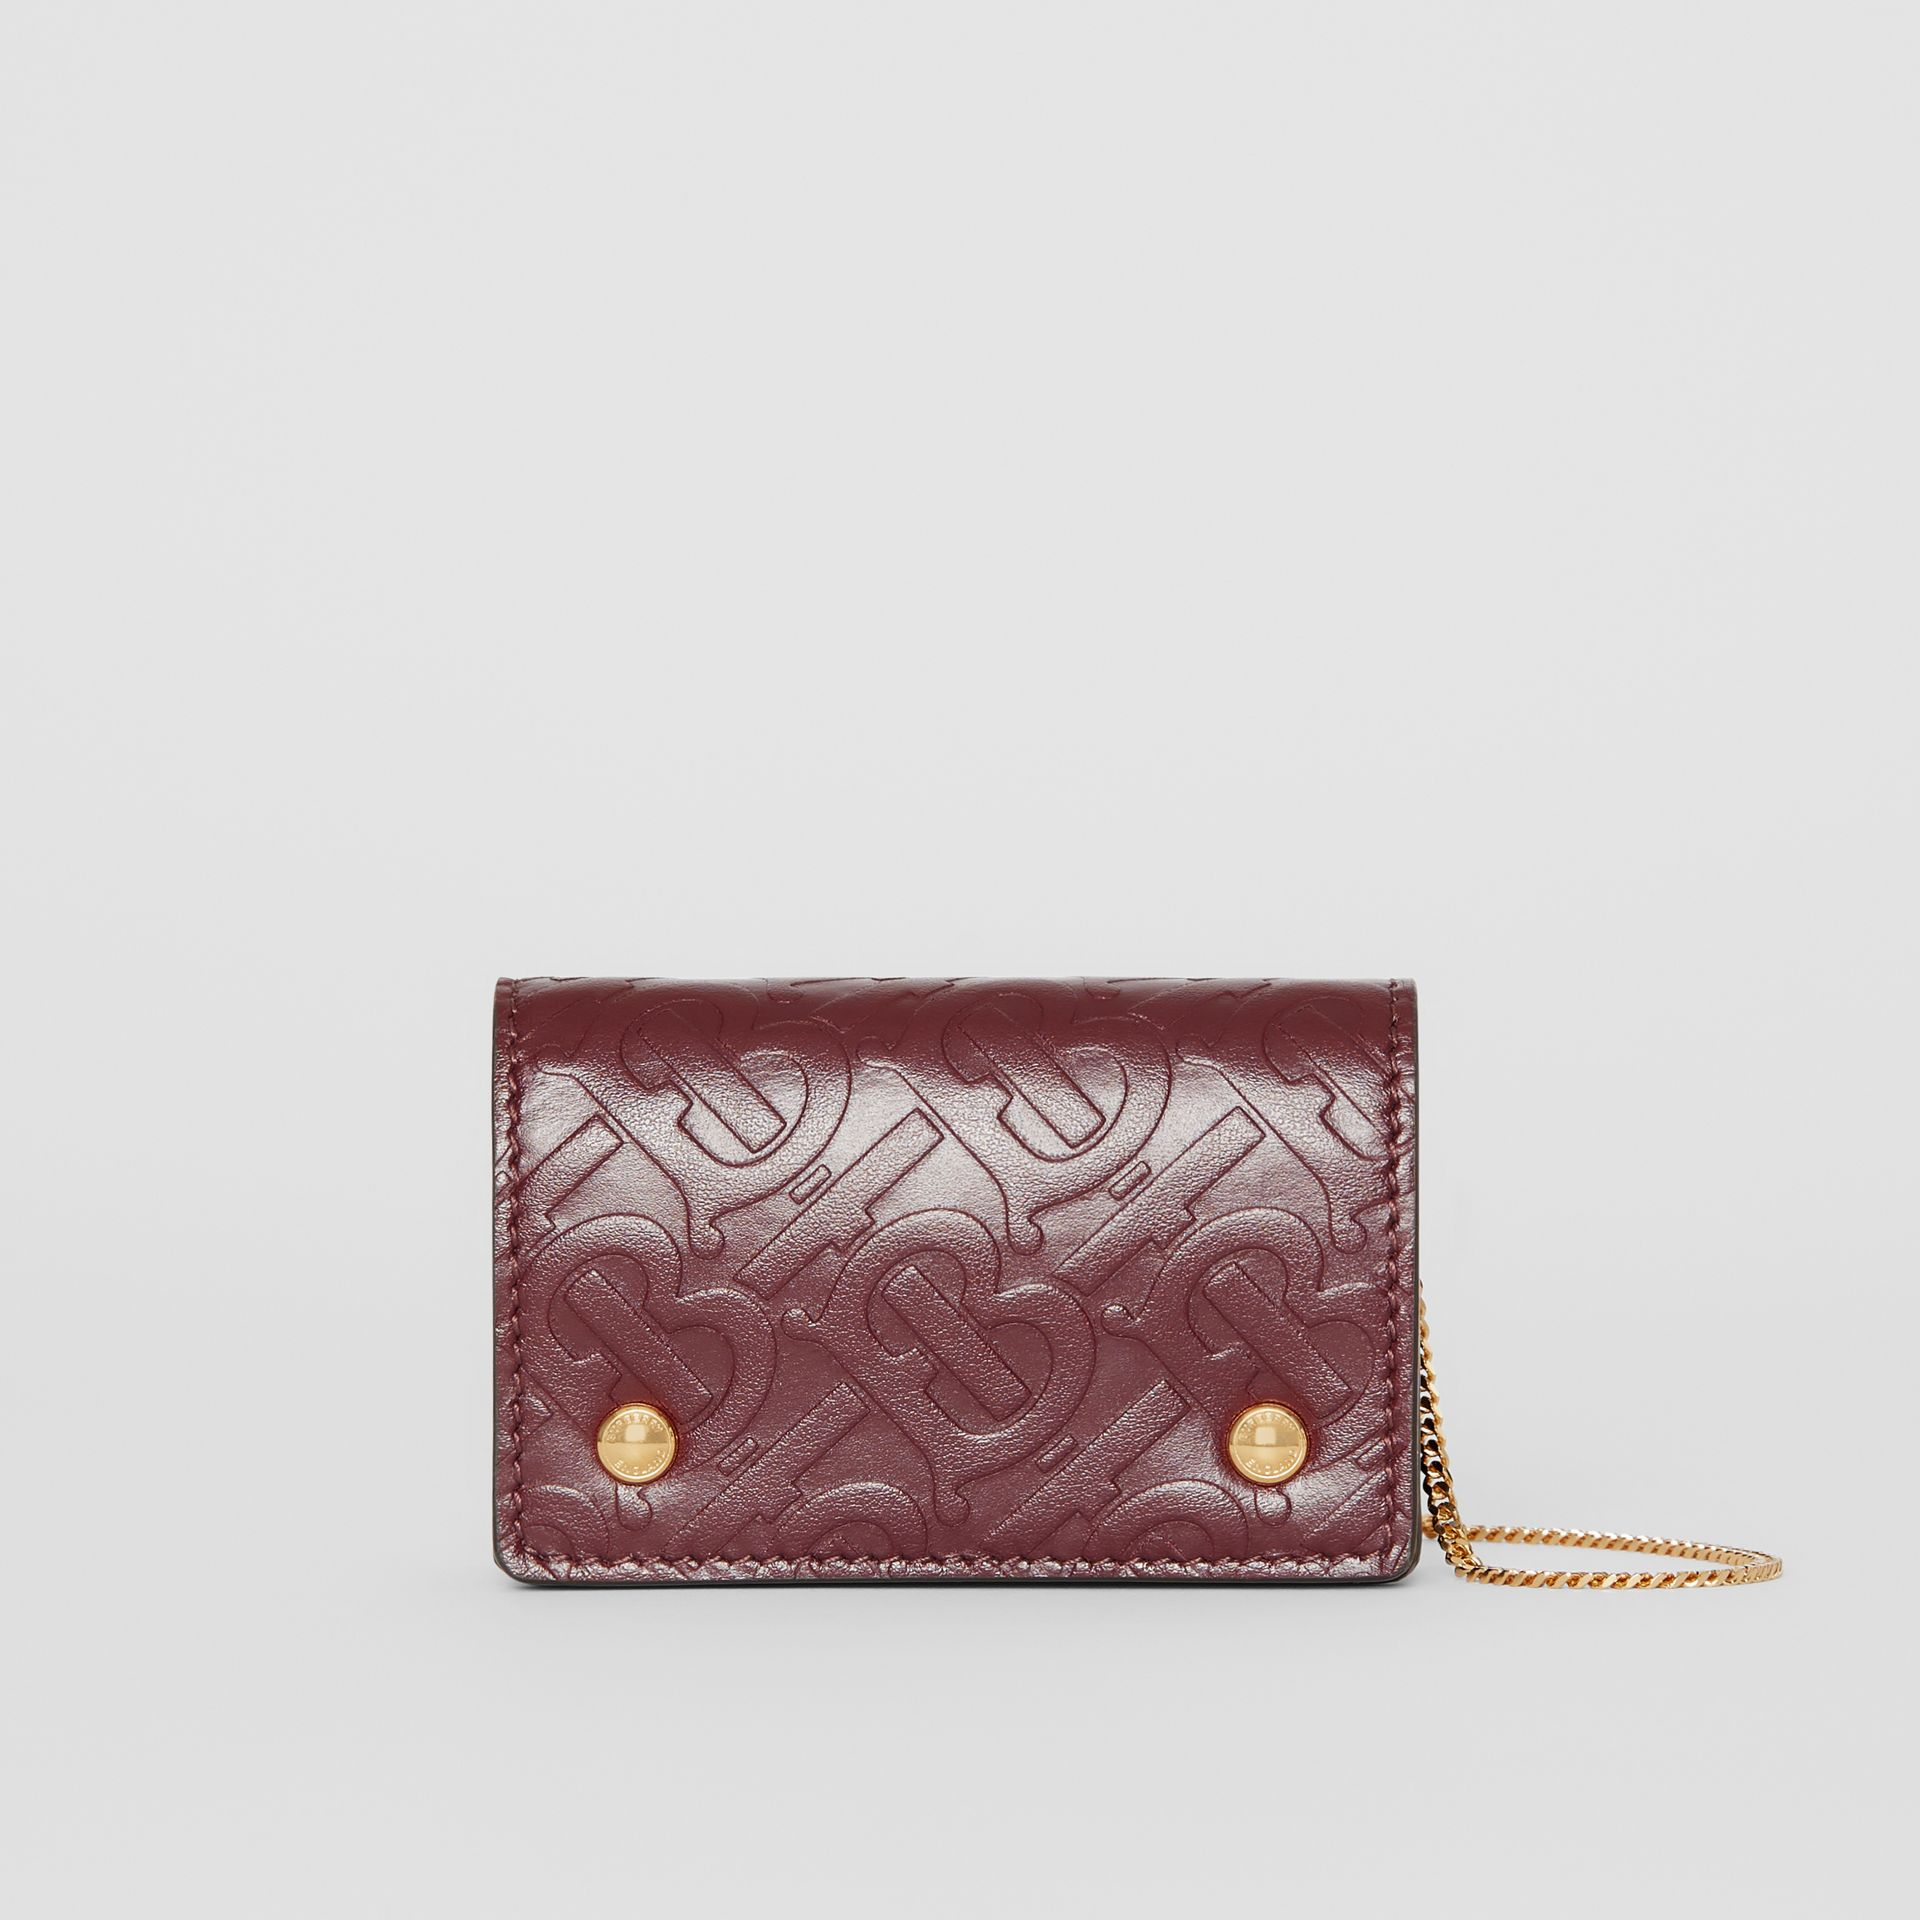 Monogram Leather Card Case with Detachable Strap in Oxblood - Women | Burberry - gallery image 0